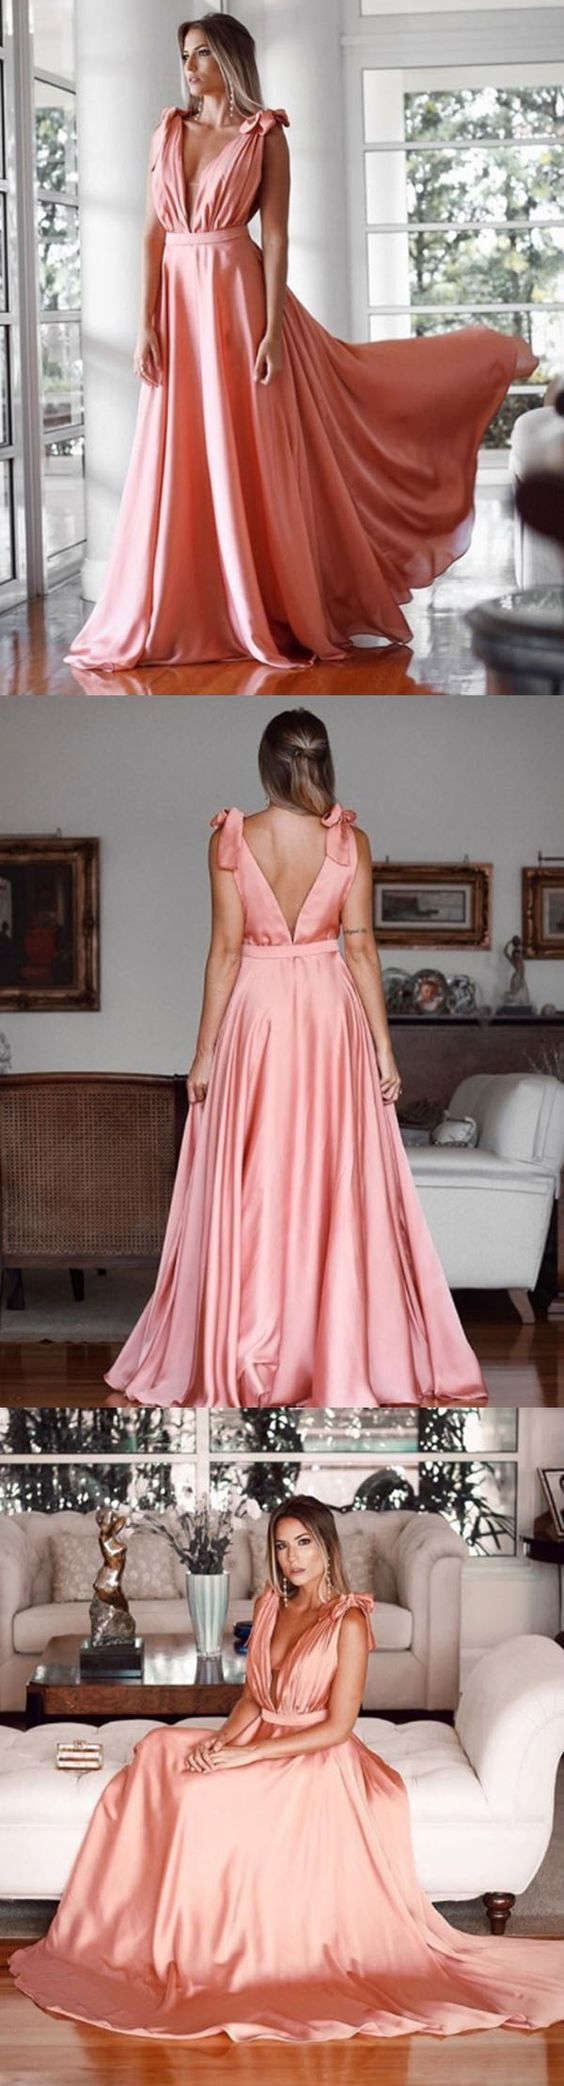 Gorgeous Deep V Neck Blush Pink Long Prom Dress Straps Formal Evening Gown Elegant Prom Gown #dress #gown #prom #prom2018 #homecoming #formaldress #formalgown #weddingparty #promdress #promgown #evening #eveningdress #eveninggown #fashion #blushpink #pink